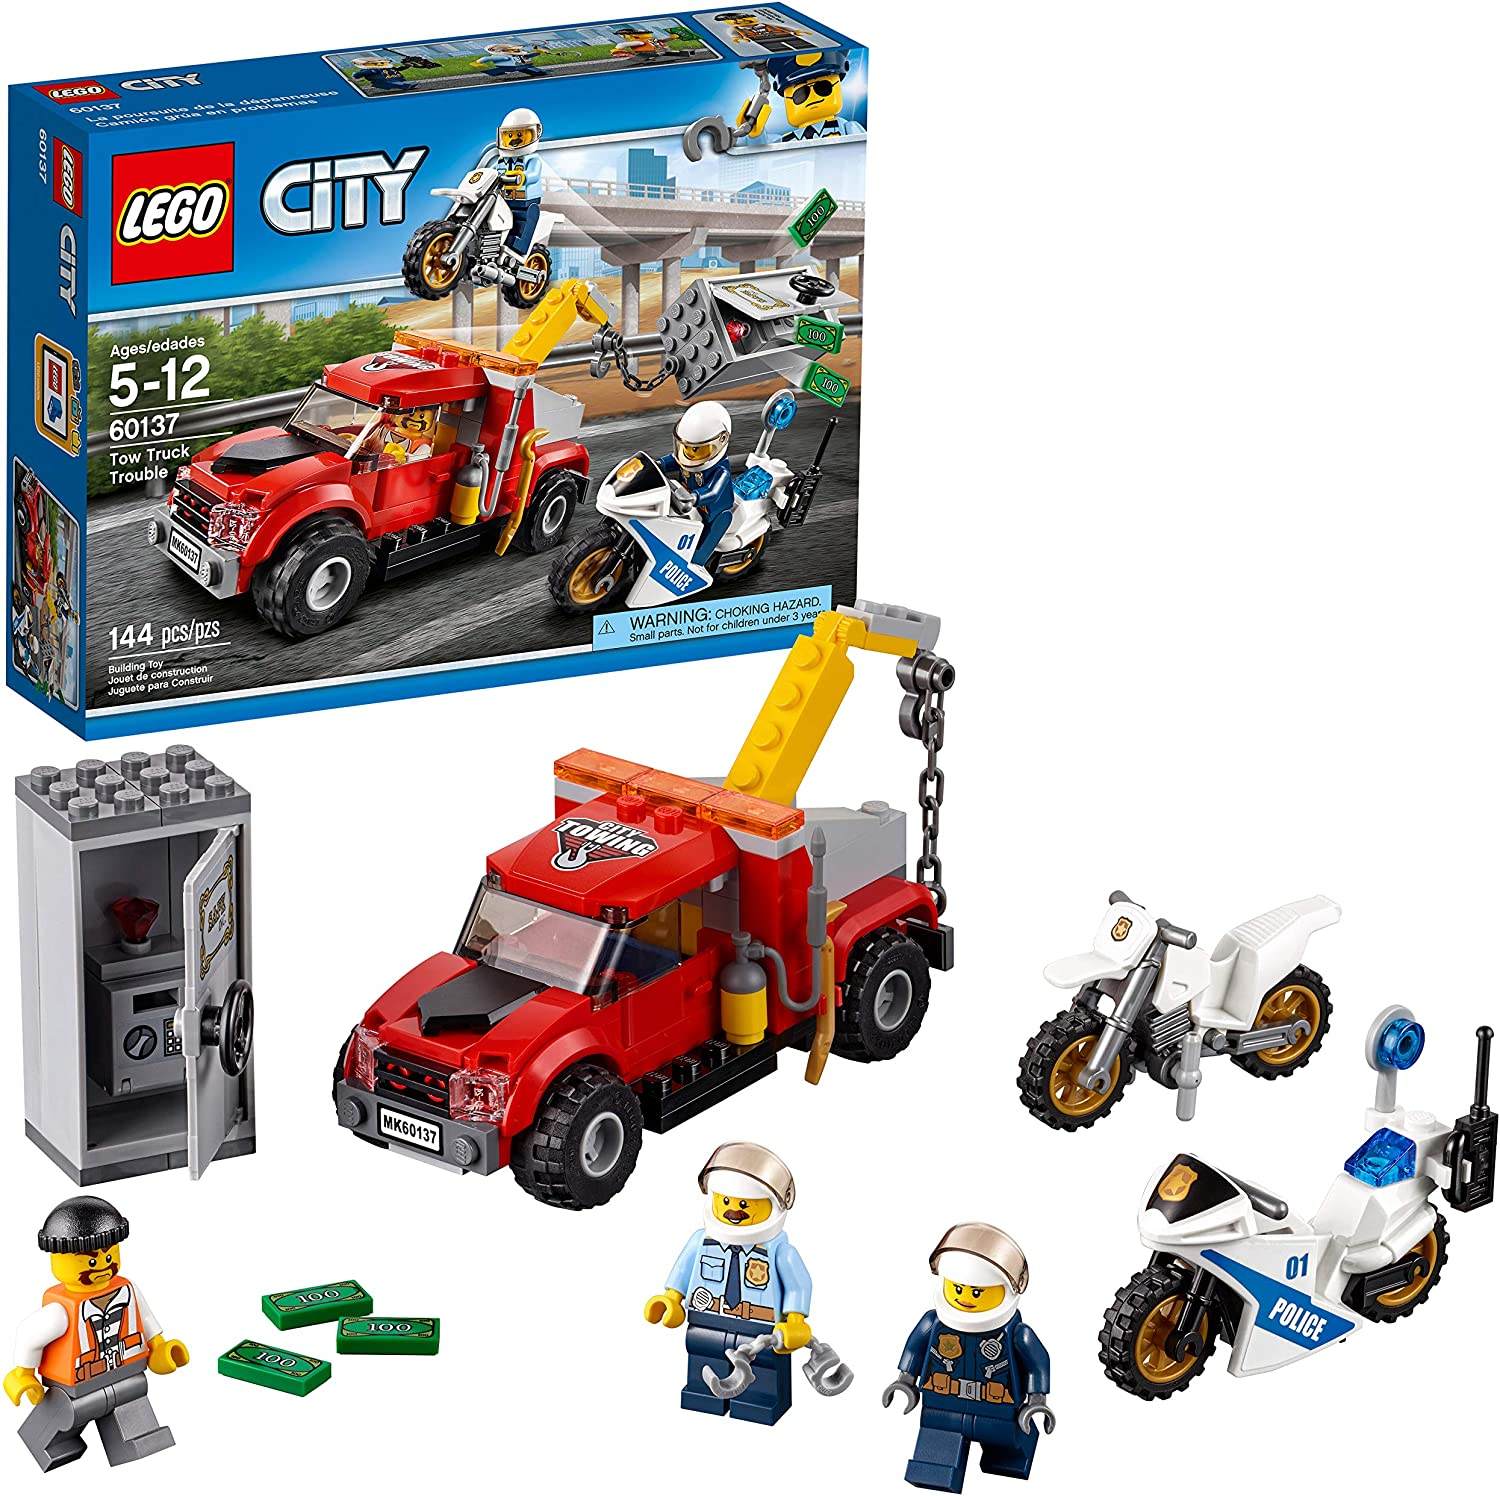 Amazon Com Lego City Police Tow Truck Trouble 60137 Building Toy 144 Pieces Toys Games